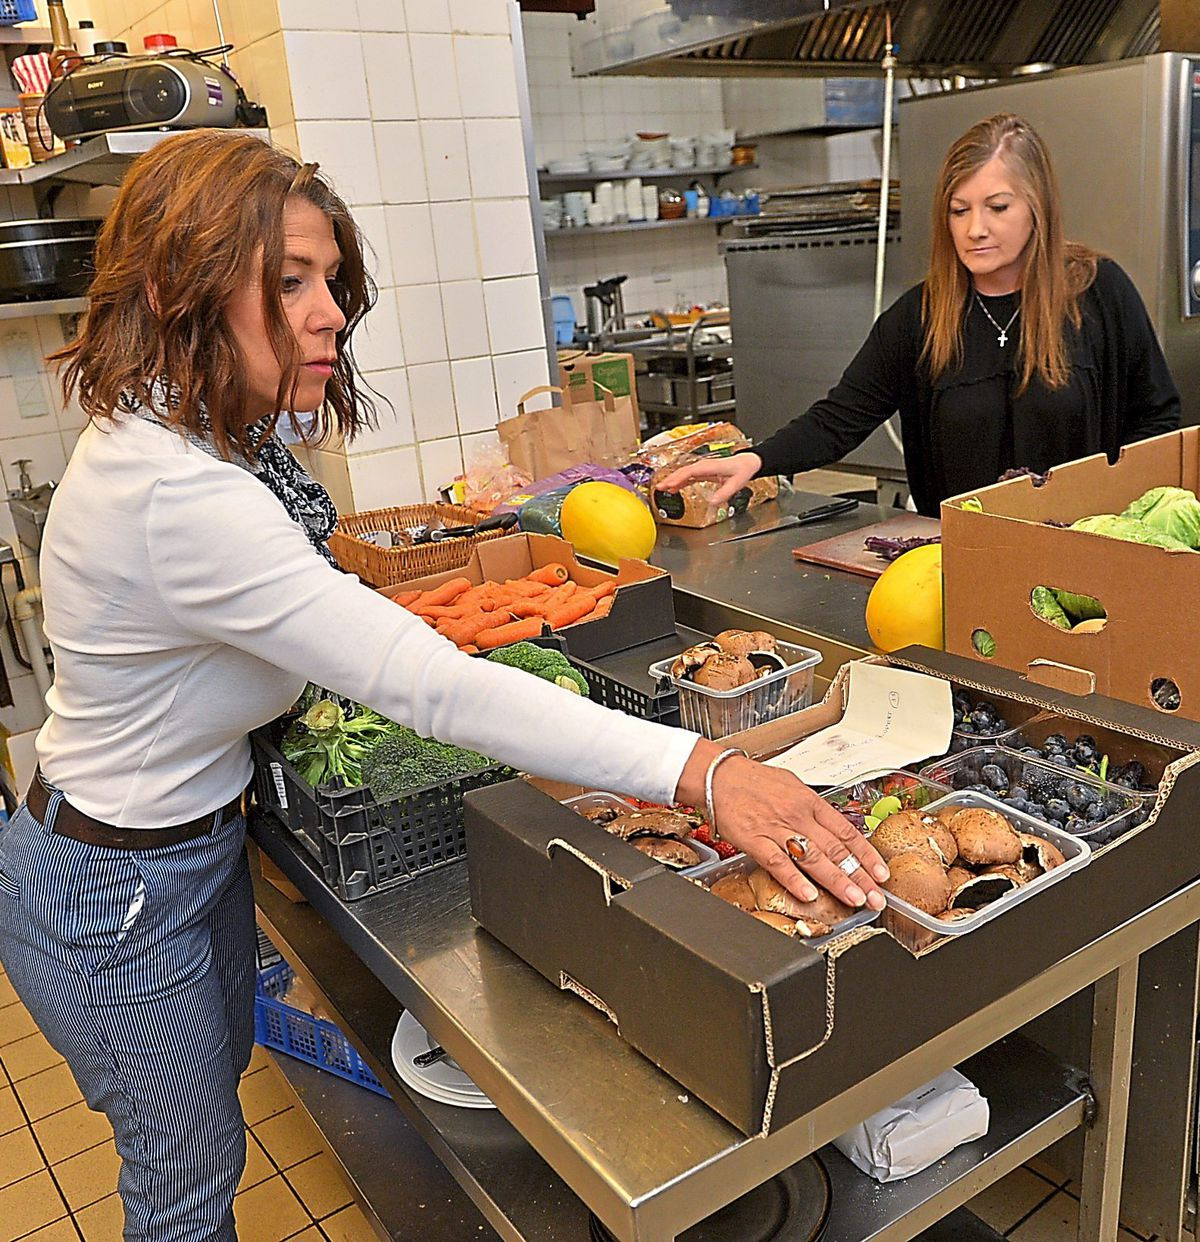 Charlie Green, left, and Jacki Law prepare supper